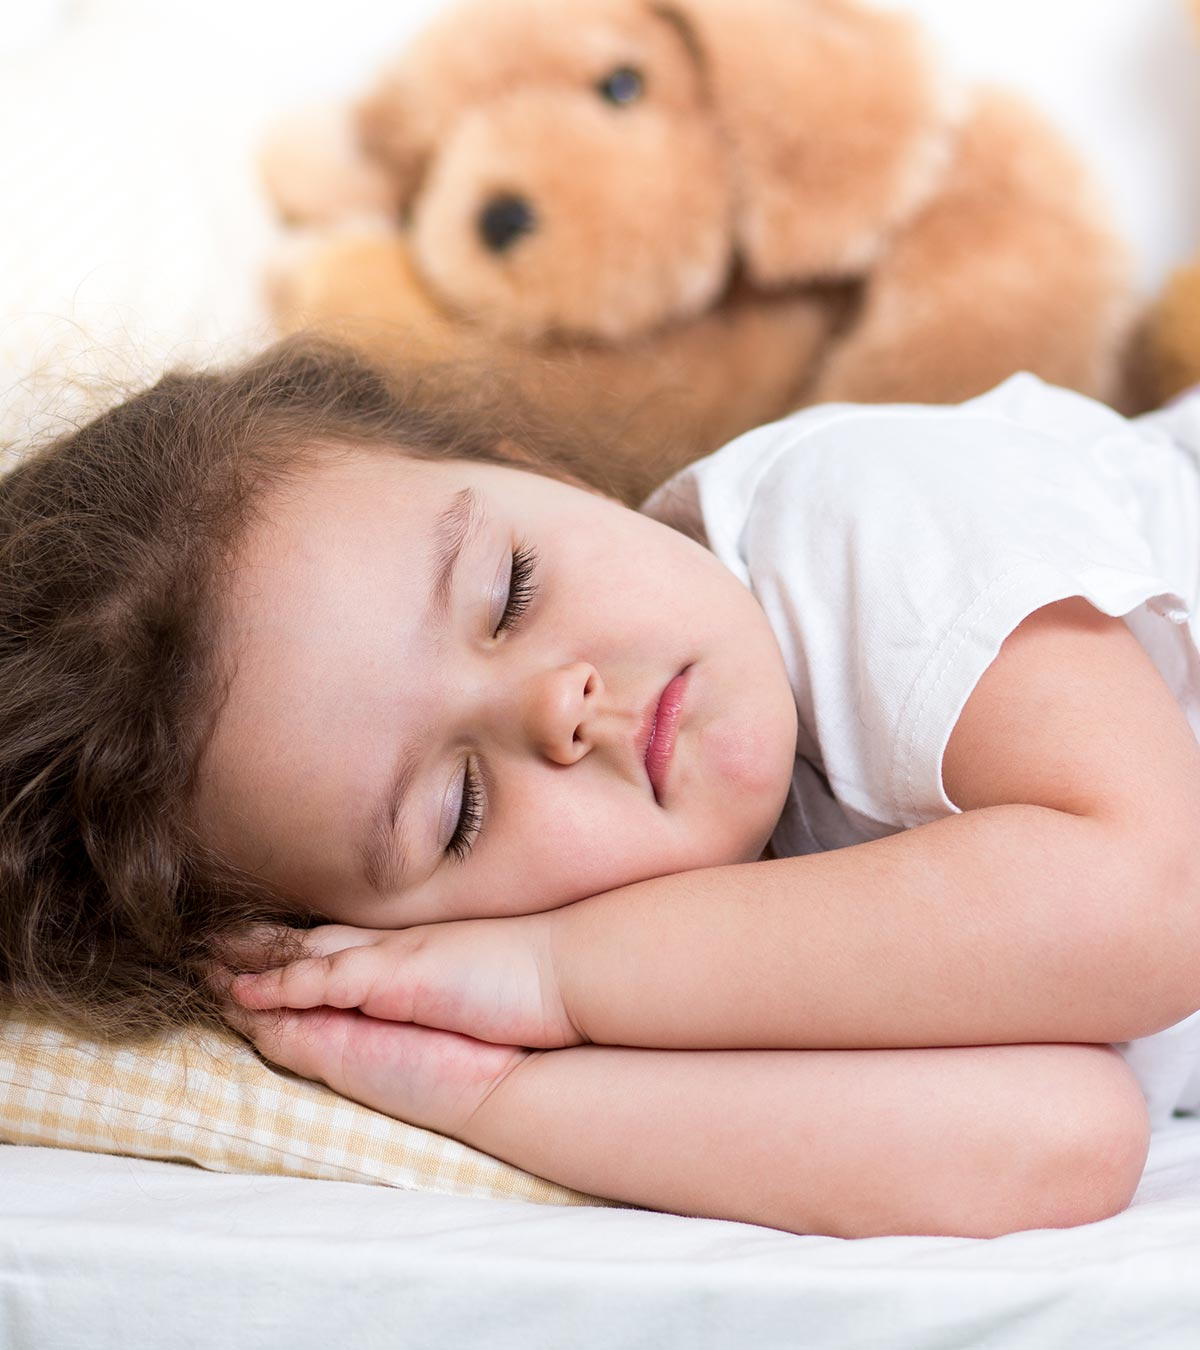 Toddler Night Sweats: Why Does It Happen And How To Treat It